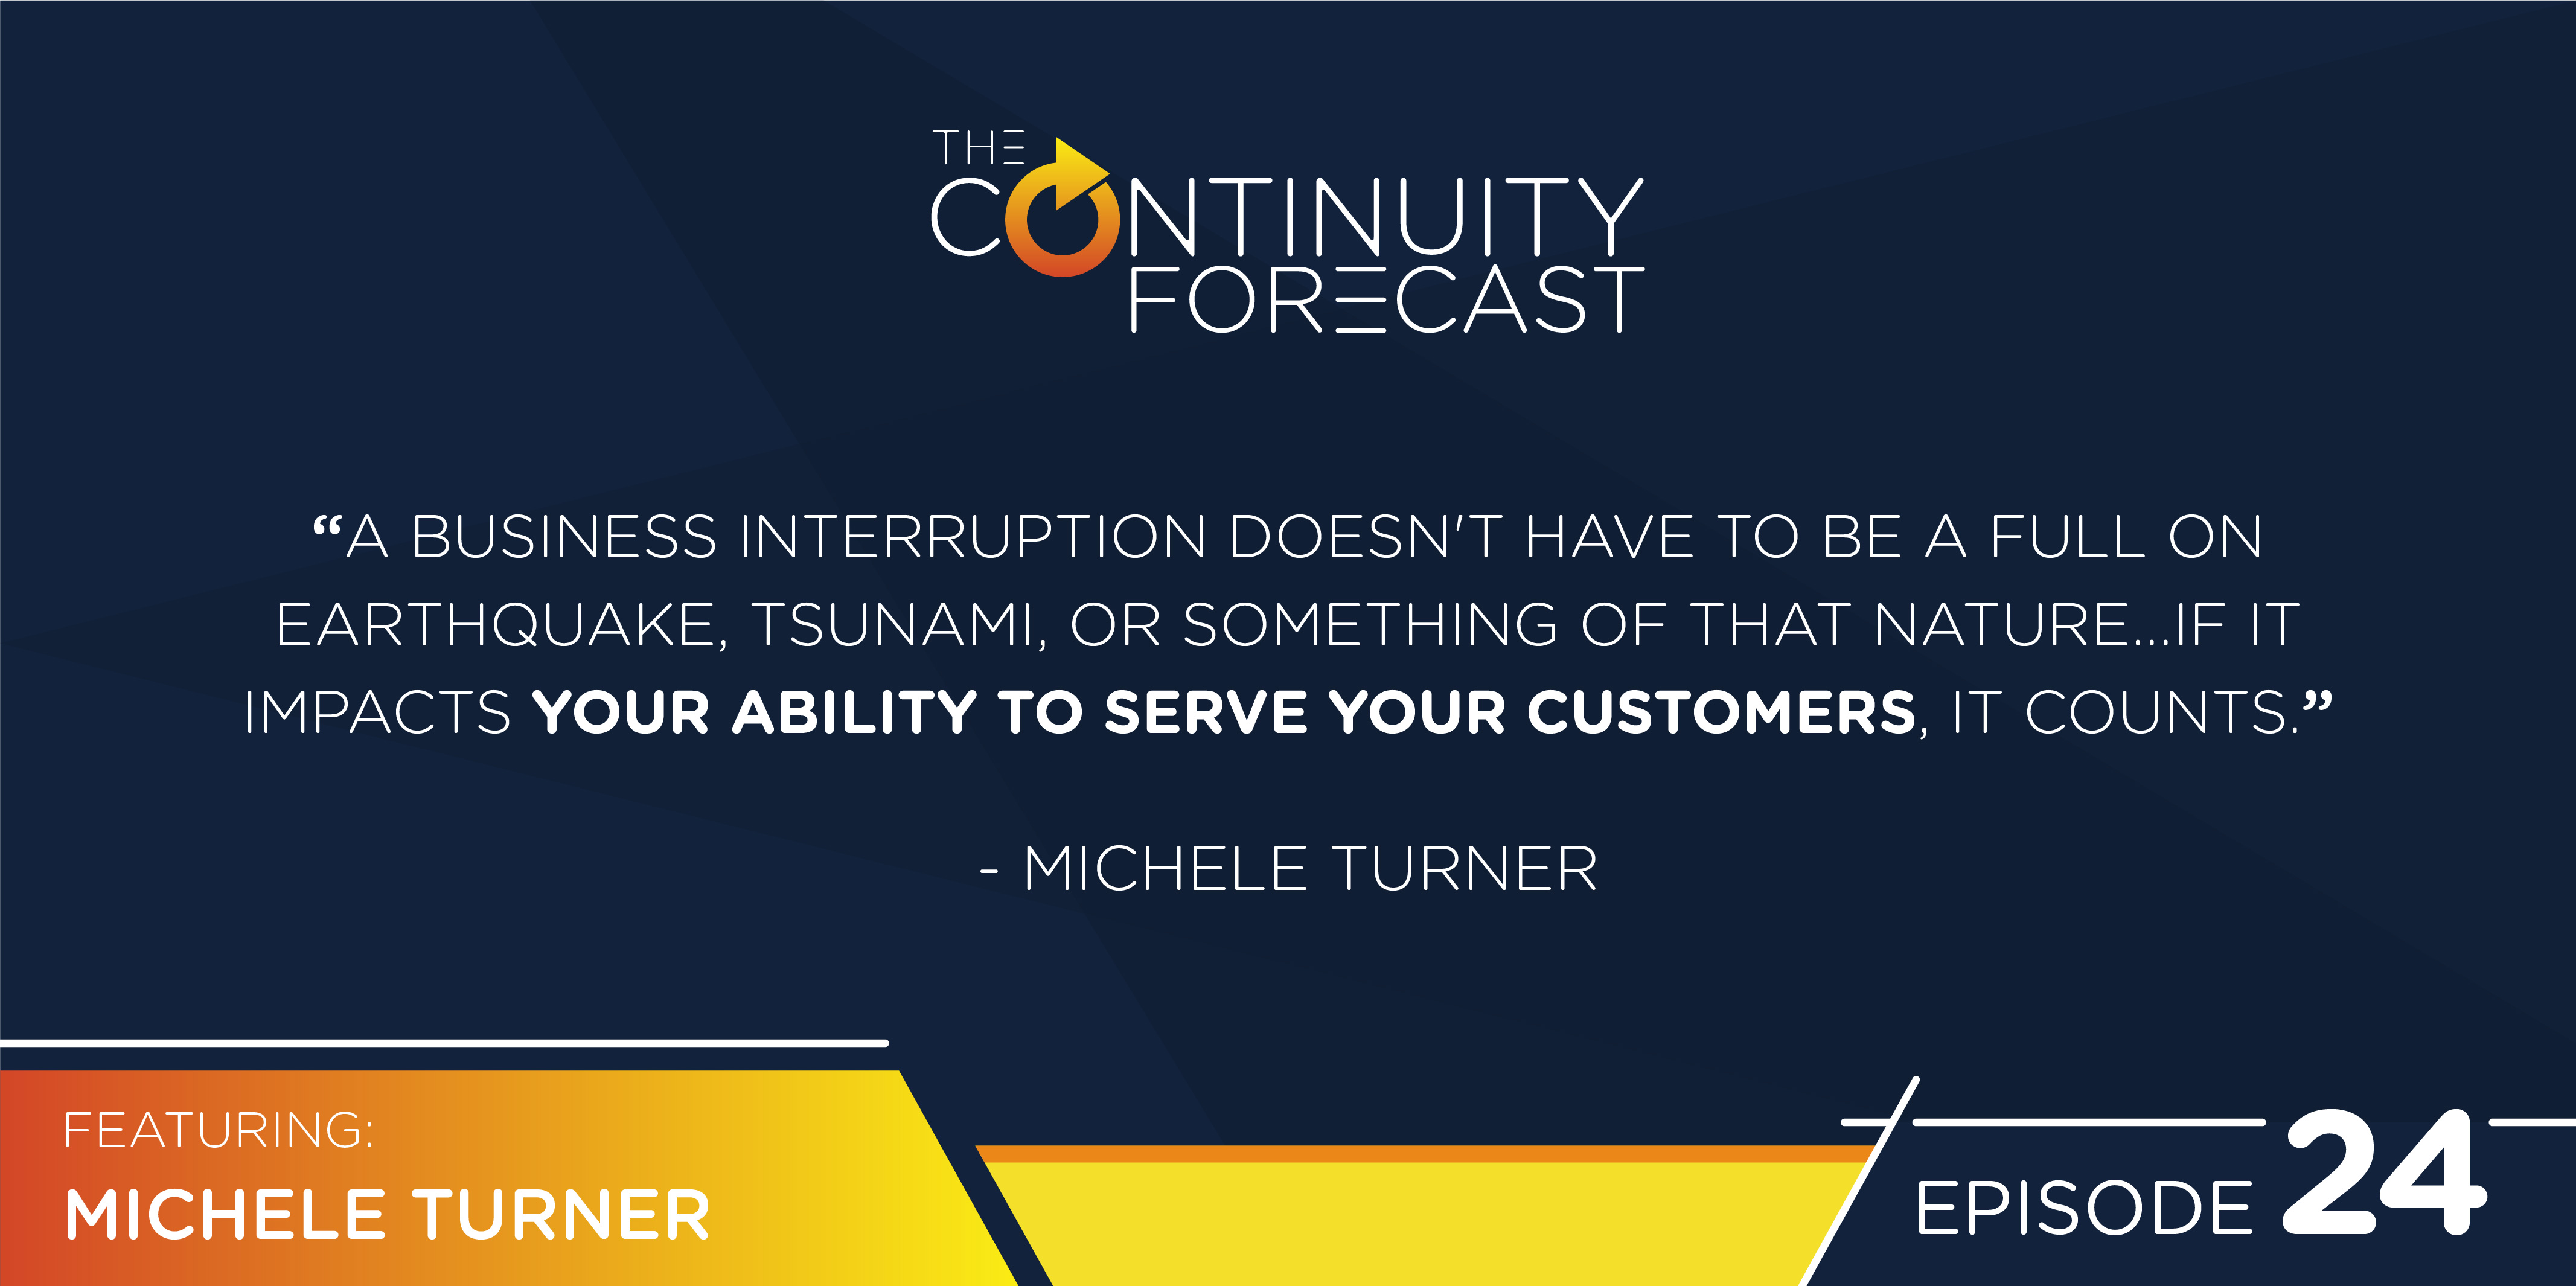 "Michele Turner from Amazon said: """"A business interruption doesn't have to be a full on earthquake or tsunami; if it impacts your ability to serve your customers, it counts."""